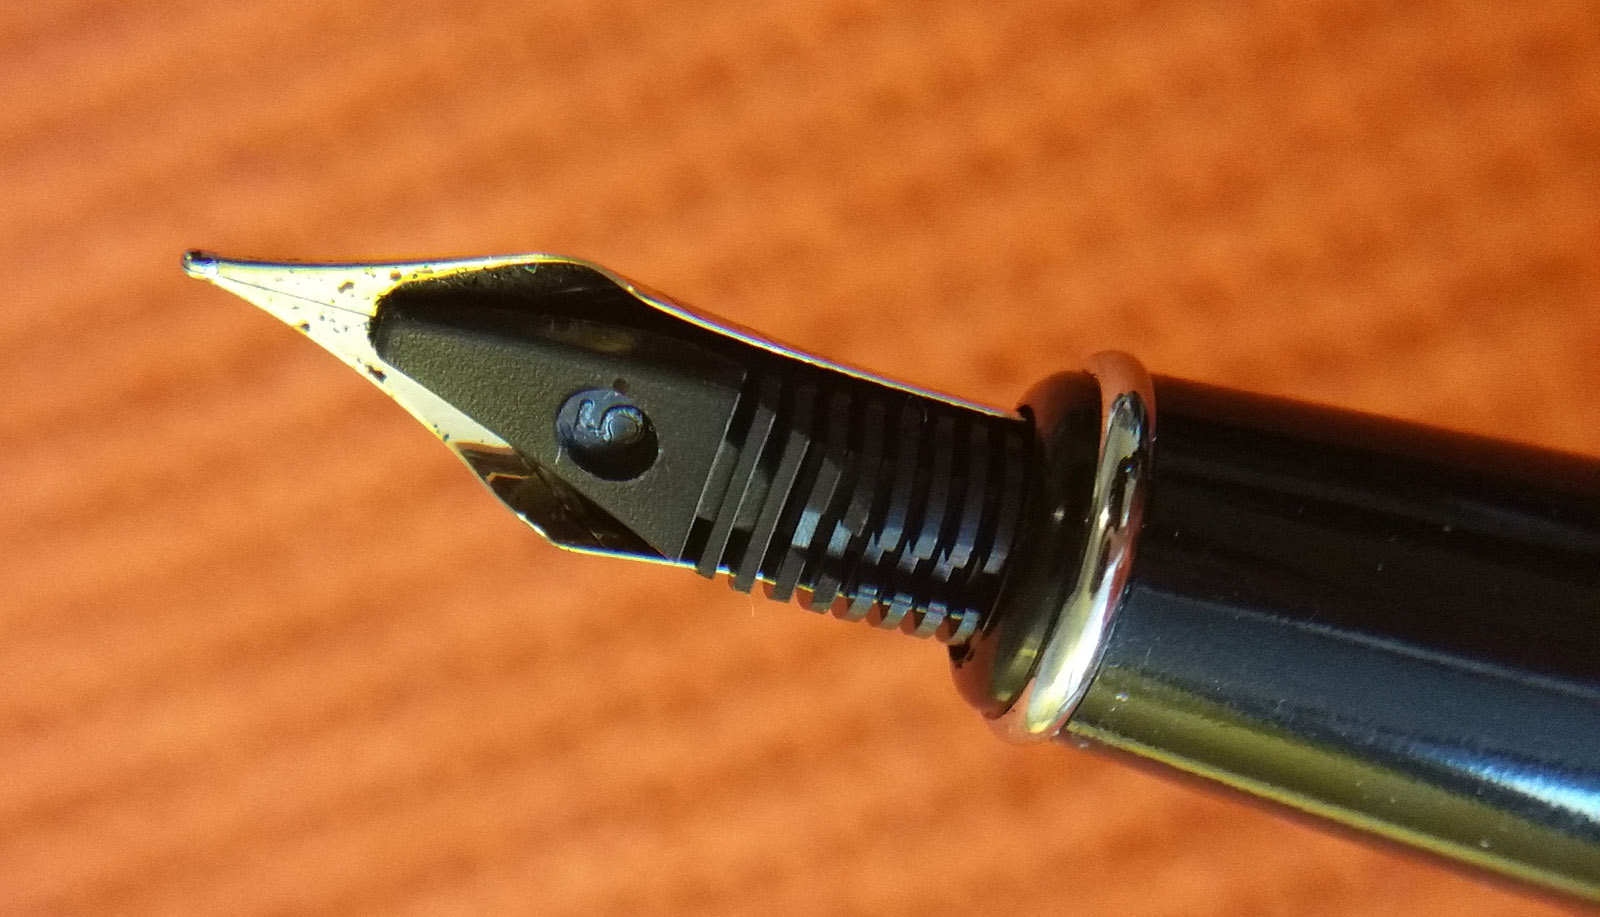 Close-up of the underside of the Wing Sung 3203 Nib, showing the feed